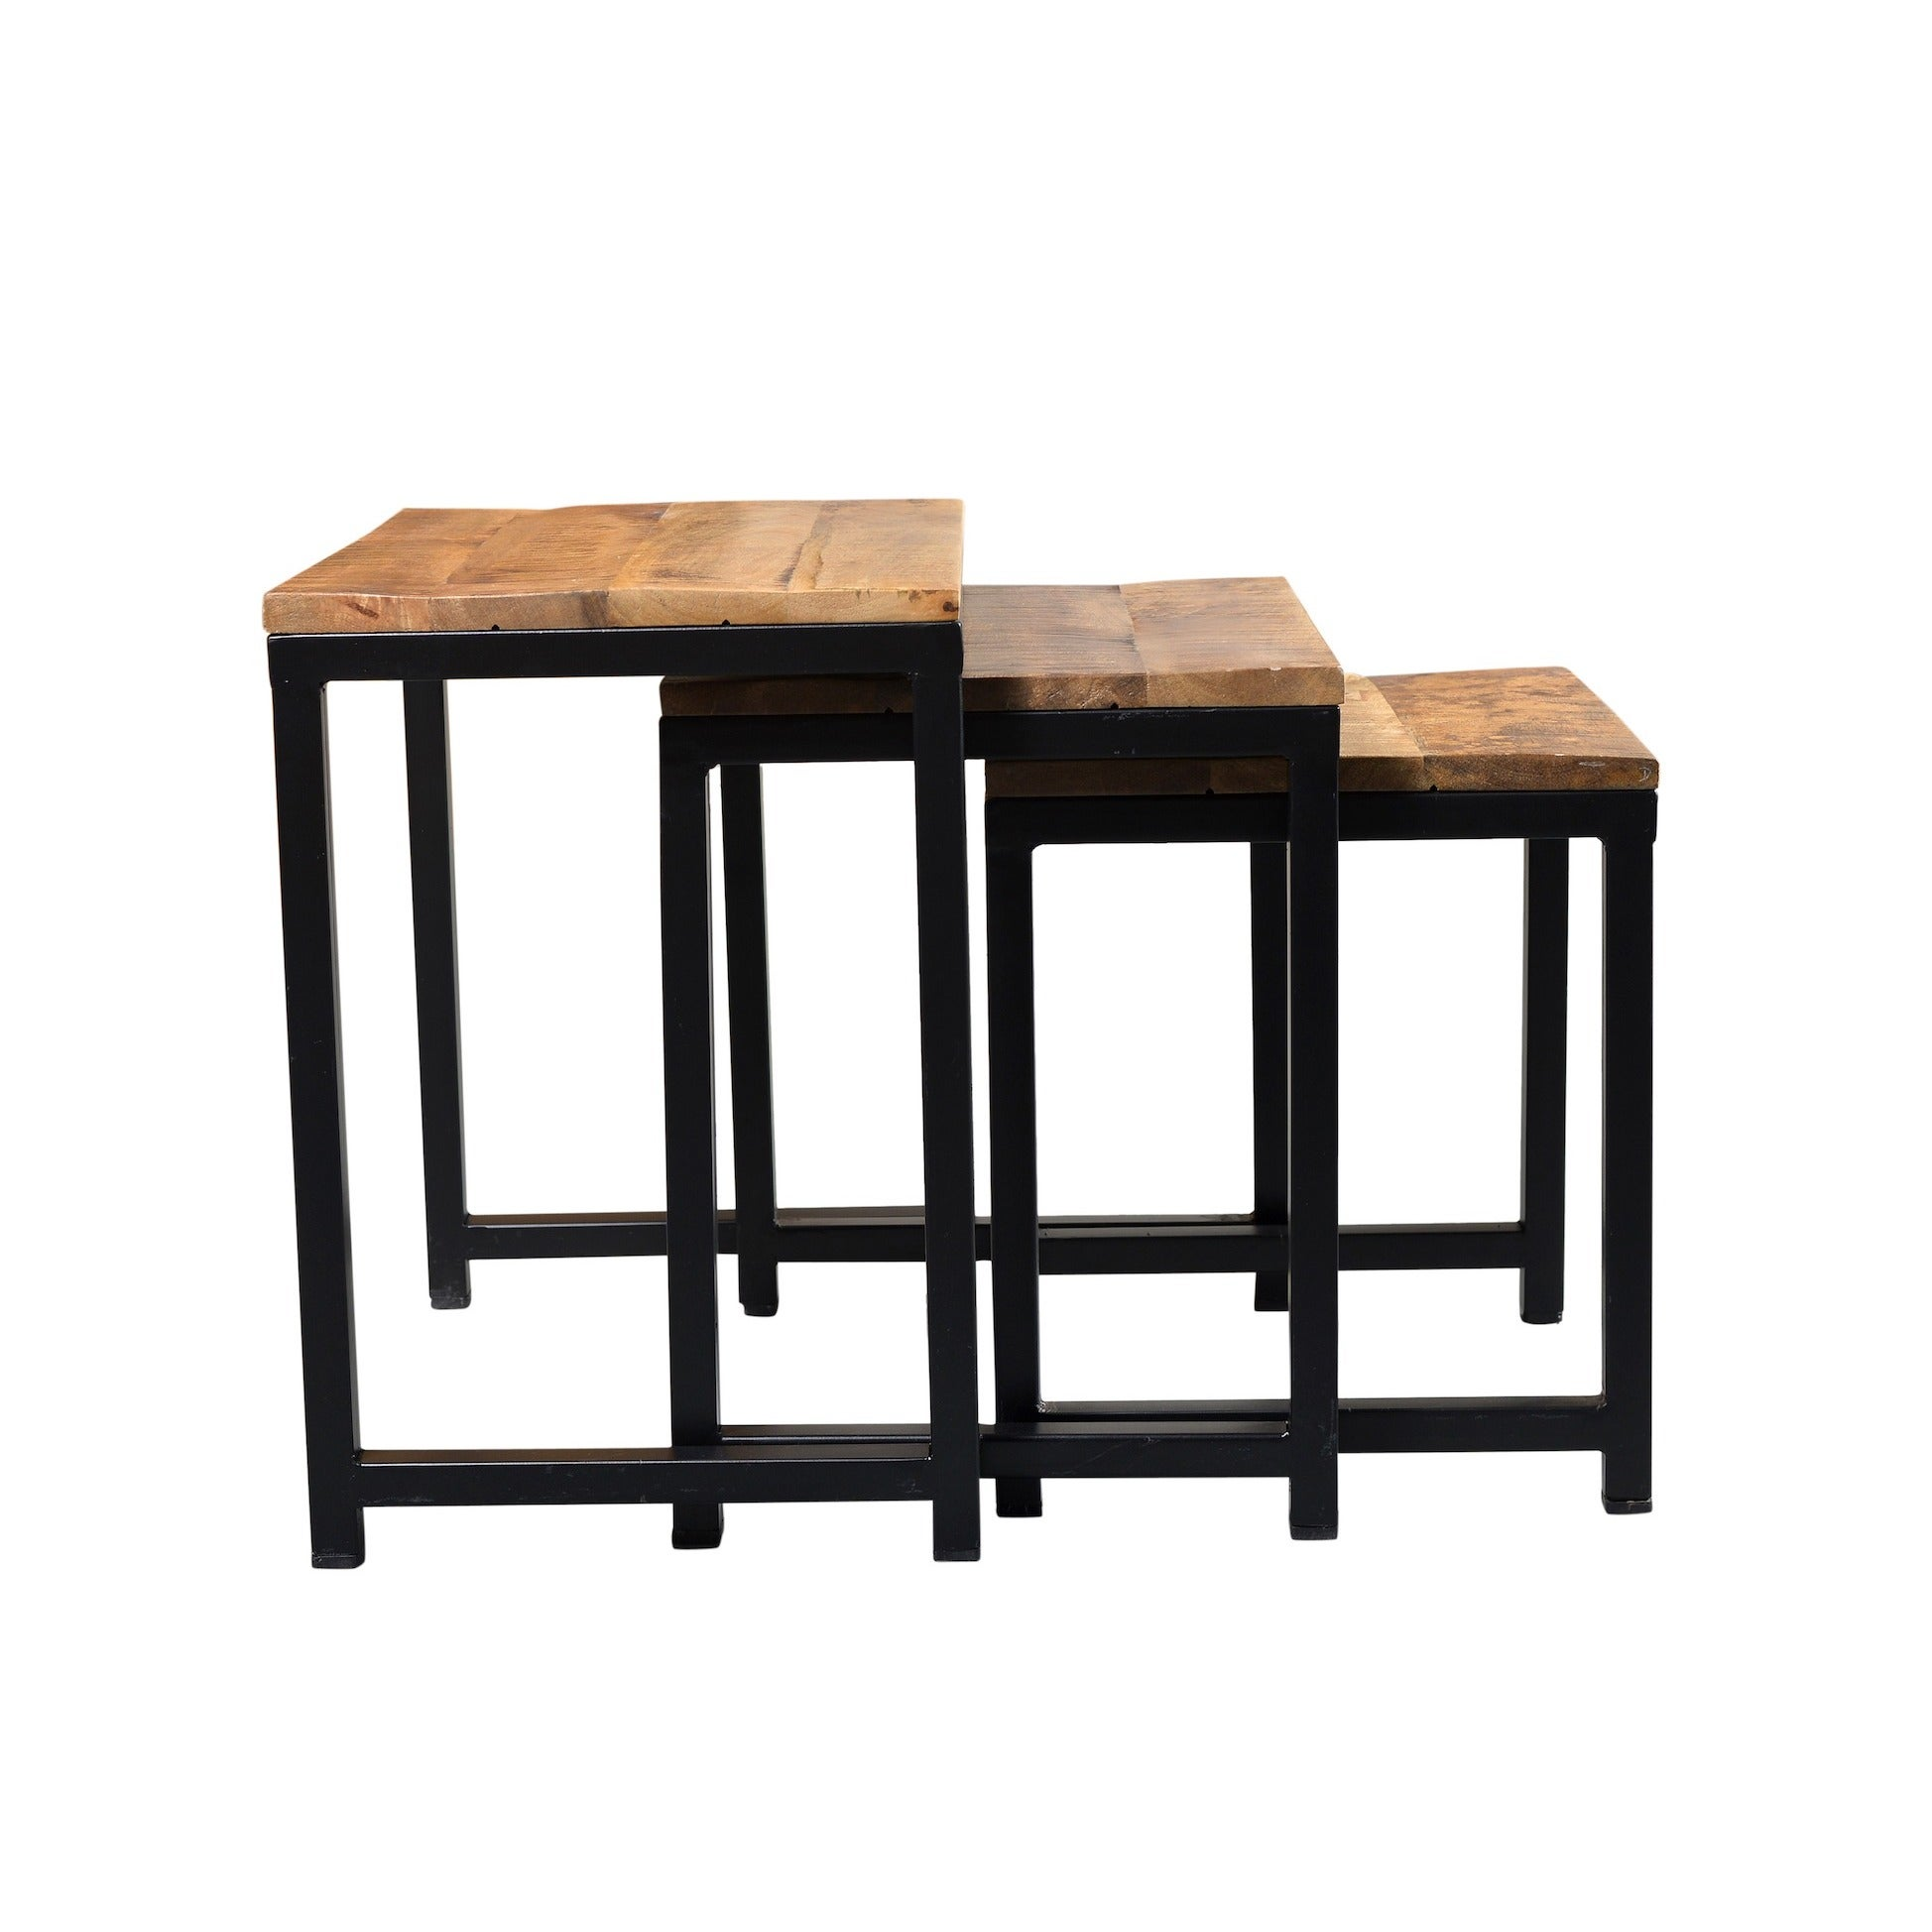 ef24514e00 Shop Timbergirl Reclaimed Wood and Iron 3-piece Nest of Tables (India) -  24